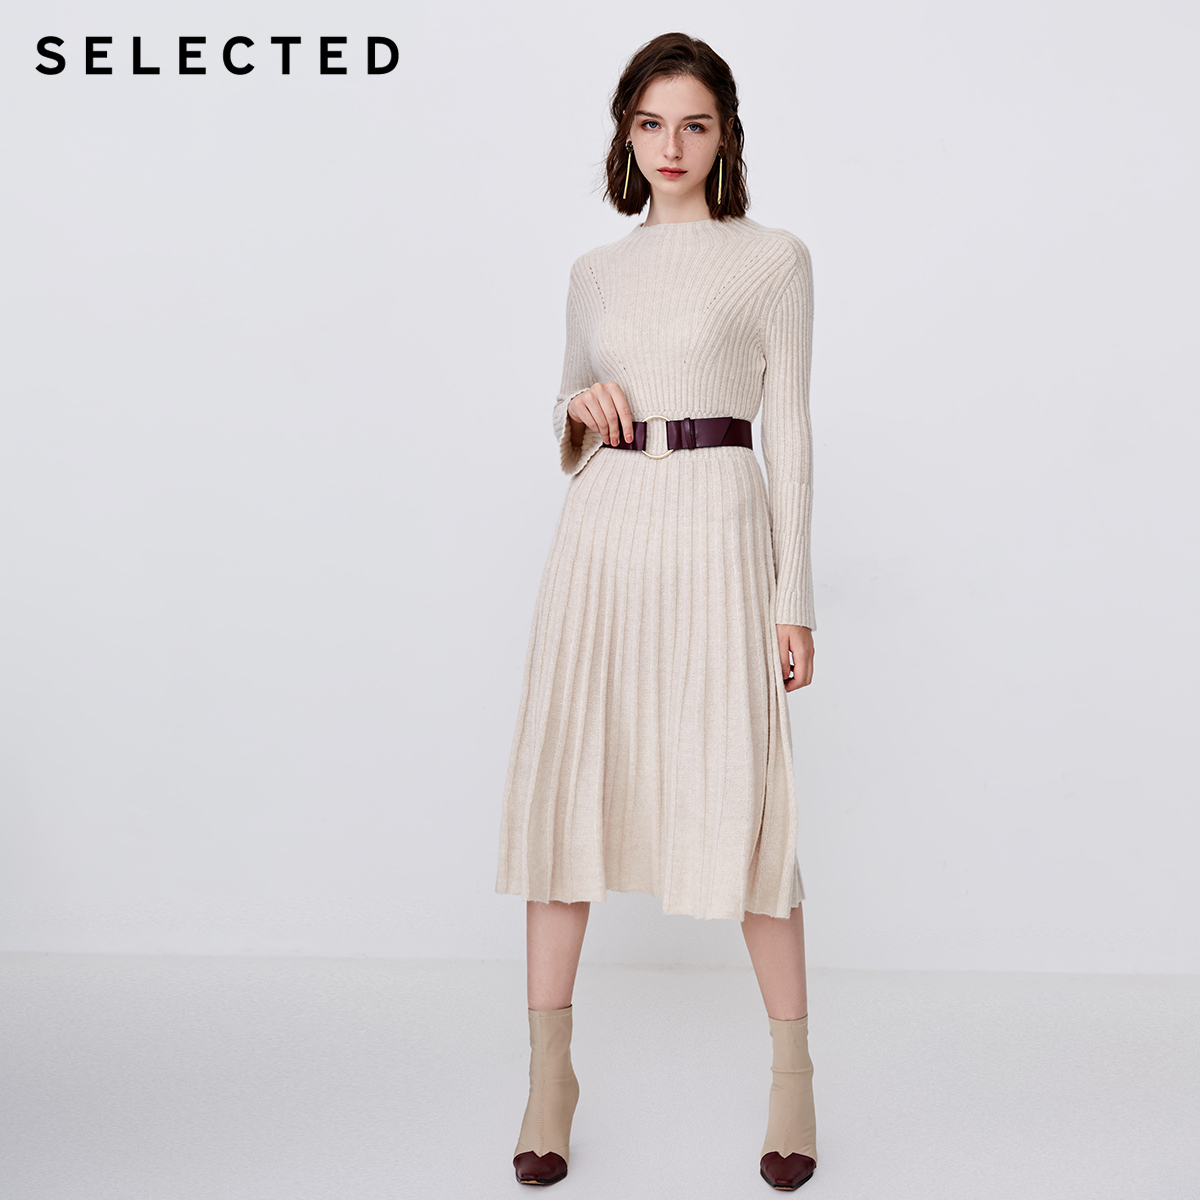 SELECTED Woman Wool Jacquard Knitted Mid length Dress  S  418446505-in Dresses from Women's Clothing    2